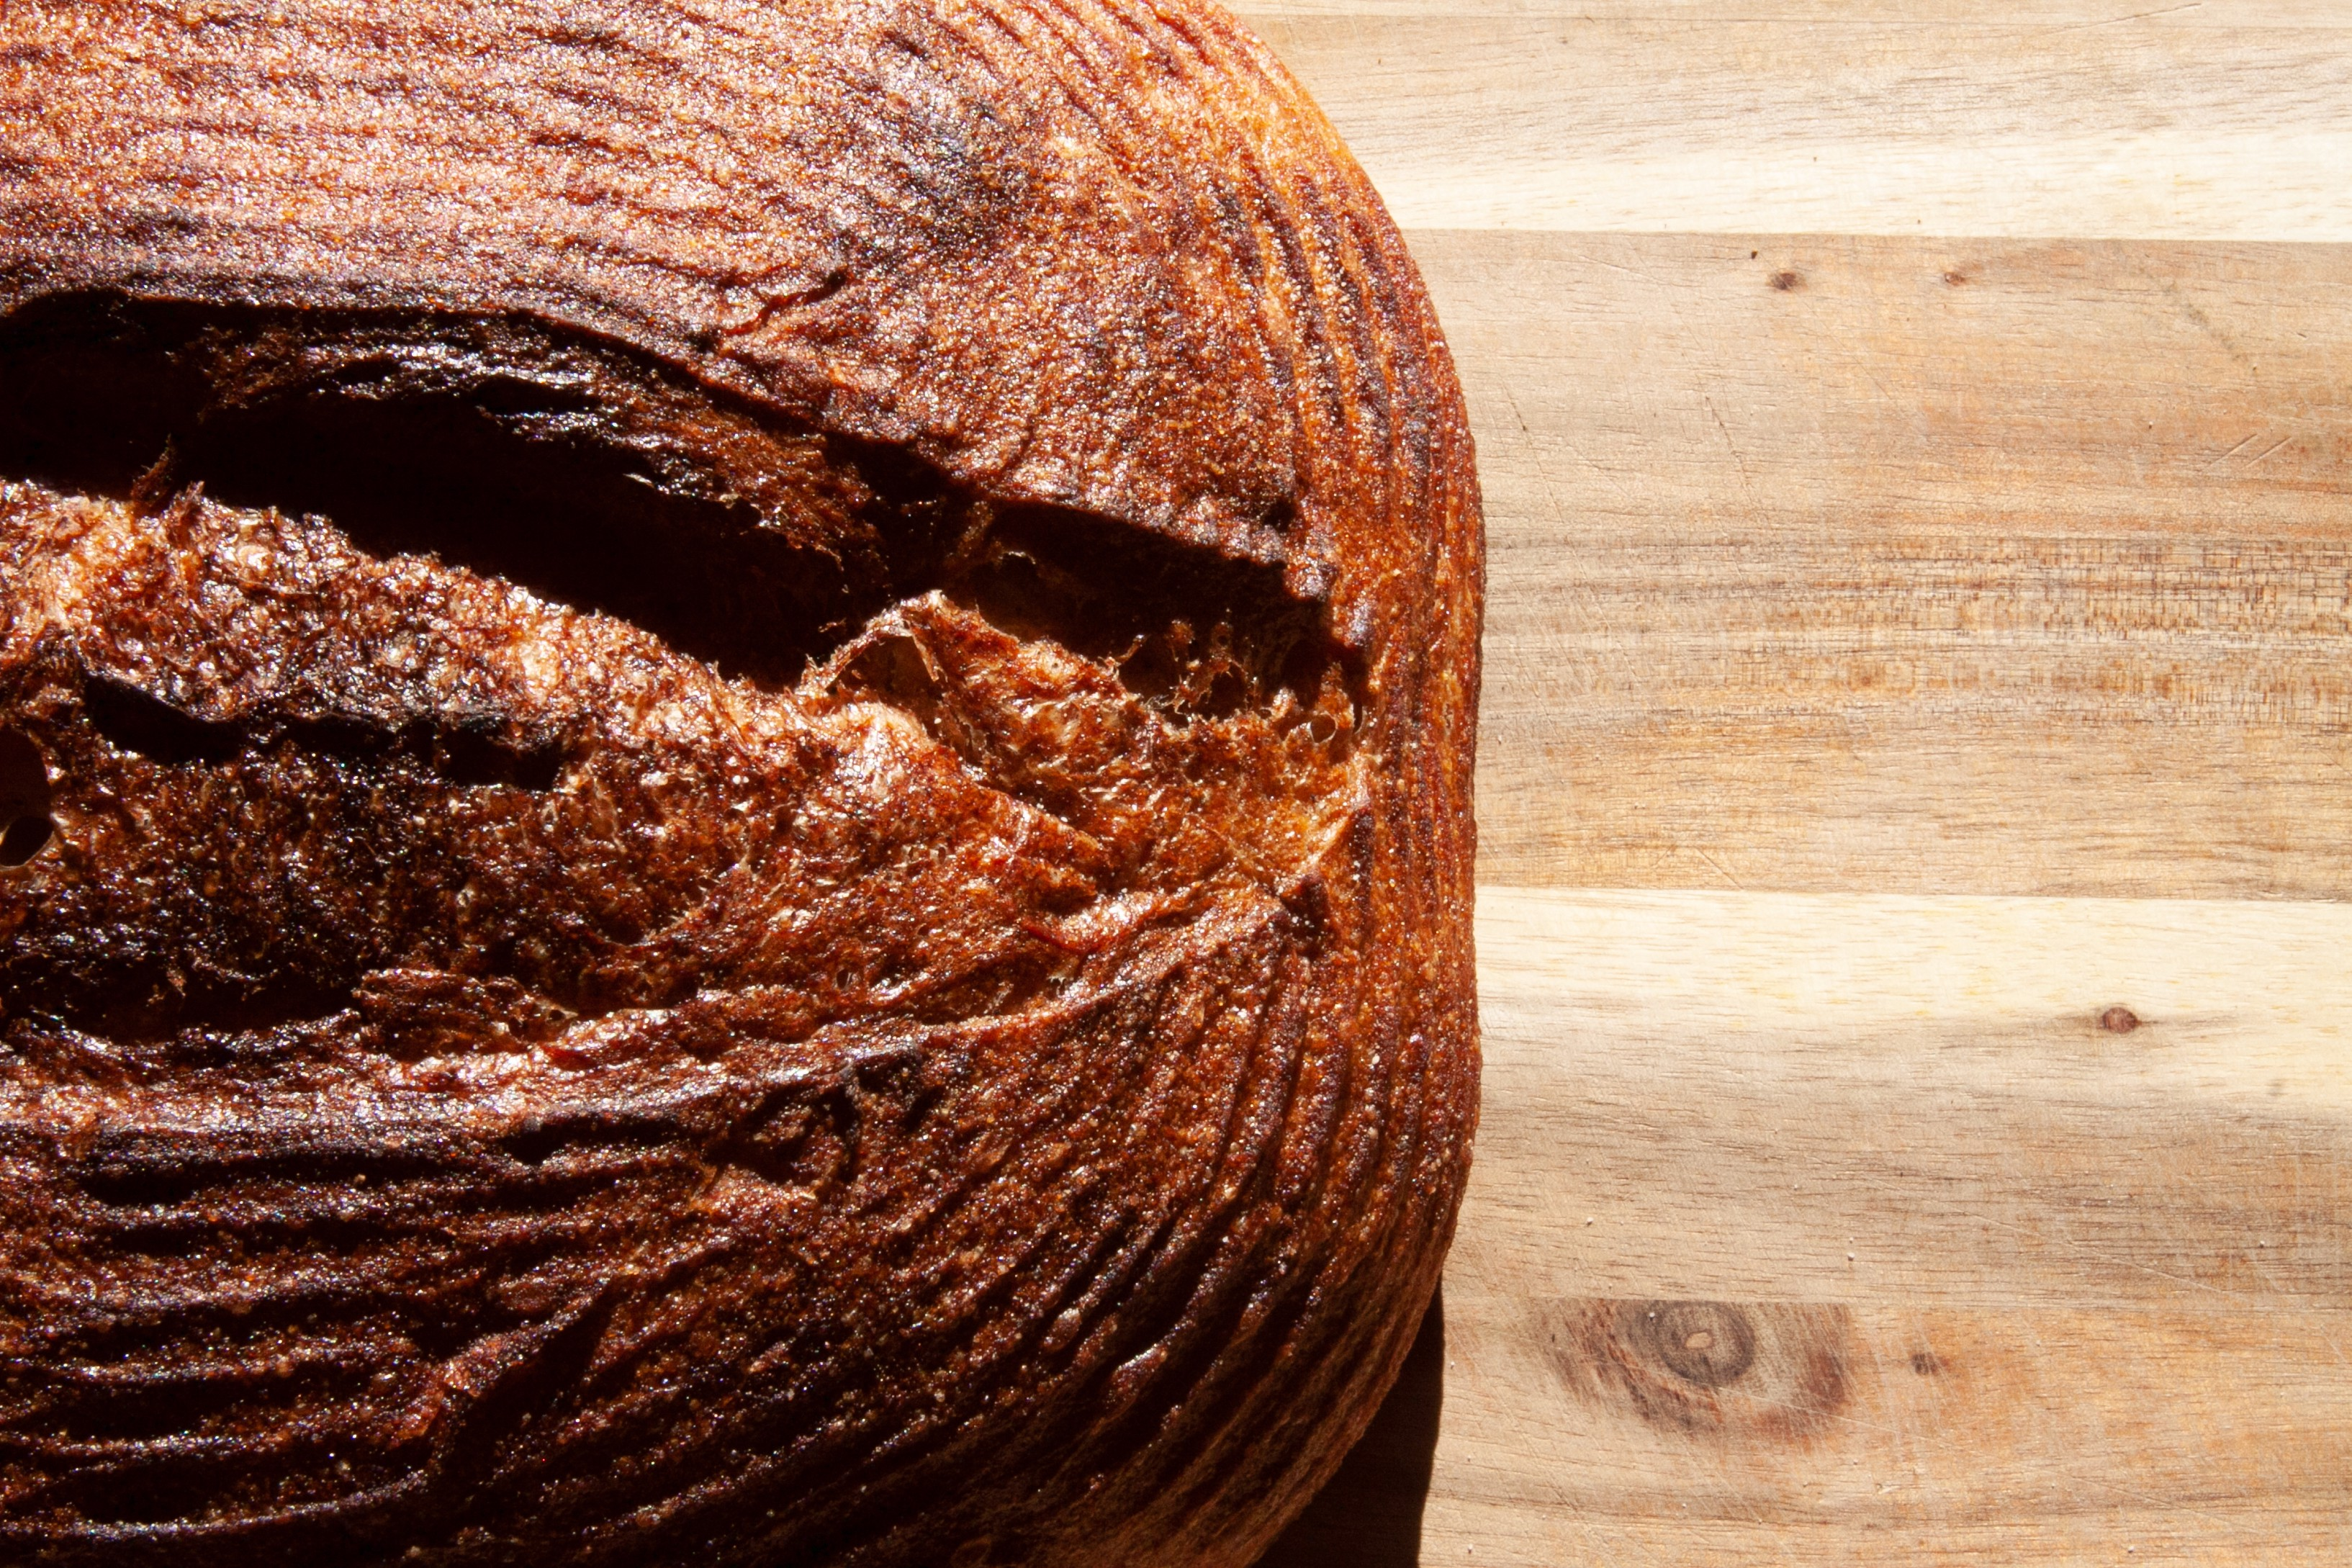 Closeup of a round, dark brown loaf of bread on a wooden surface.